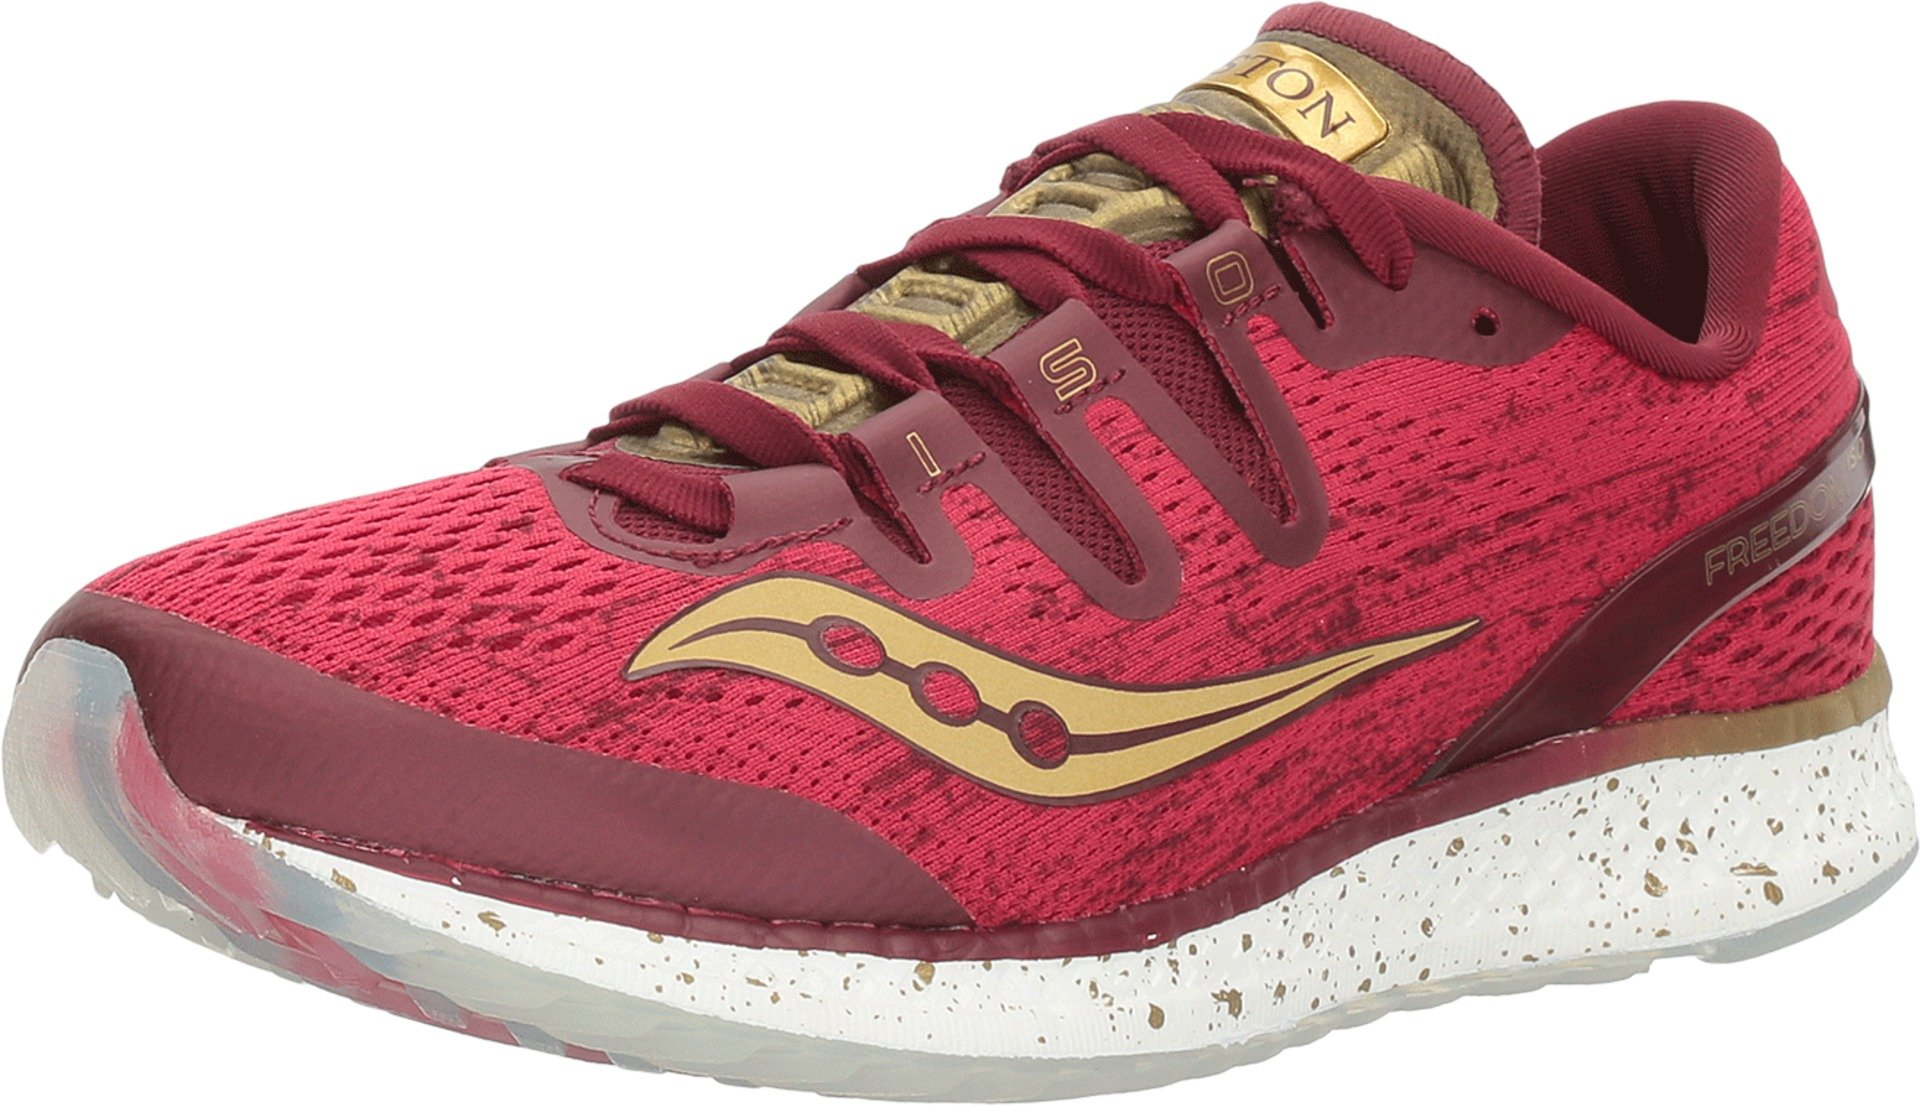 Women's Saucony Freedom ISO Running Shoes Red S10355-15 (7.5)